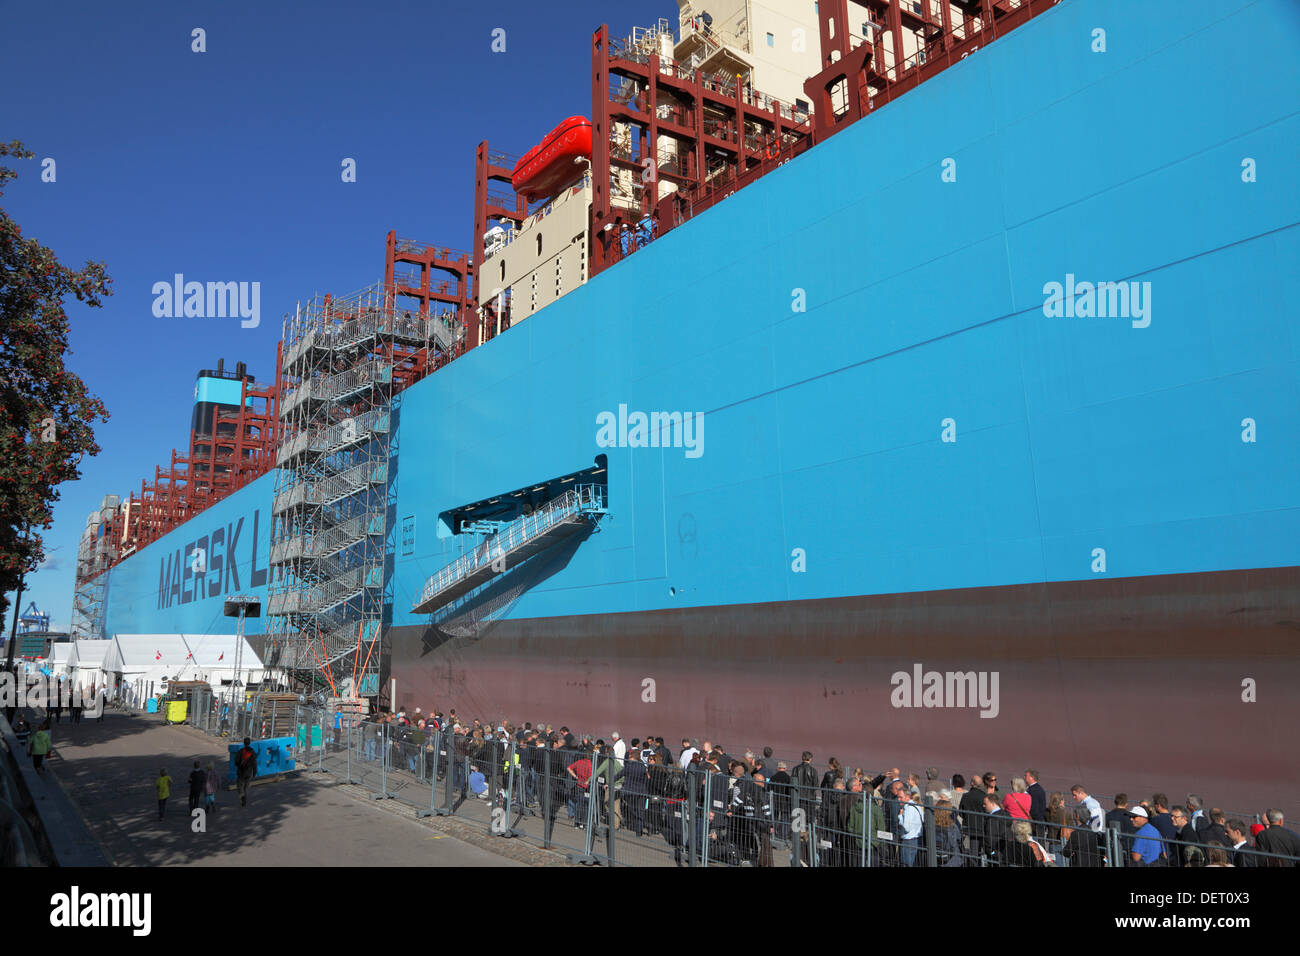 Copenhagen, Denmark, Sept. 23rd. Maersk Line's triple-E ship Majestic Maersk arrived to Langelinie in port of Copenhagen last night for a week of presentation and name giving ceremony. On Wednesday Her Royal Highness the Crown Princess names the world's largest ship.This marks the opening of the vessel and the exhibition at Langelinie, and the public is offered a tour on the container ship. More than 42,000 people have already booked their ticket to board the ship, 400m long and 59m wide. The Majestic Maersk is the second of Maersk's 20 ordered Tripple-E ships. Credit:  Niels Quist / Alamy Liv - Stock Image